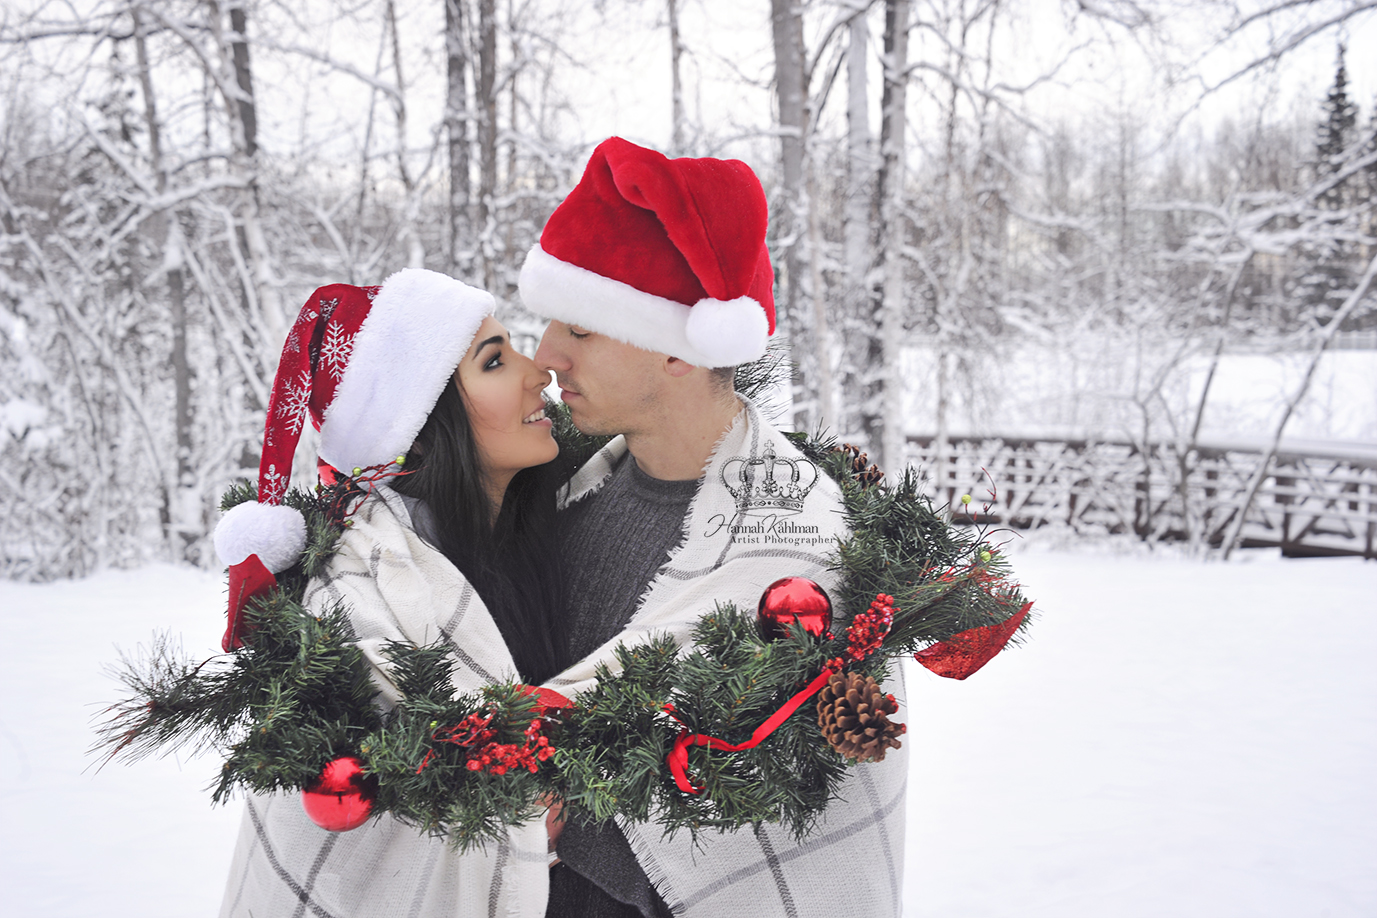 Romantic_snow_portrait_of_couple_outdoors_Eagle_River_Alaska_Anchorage_Alaska_engagement_photographe